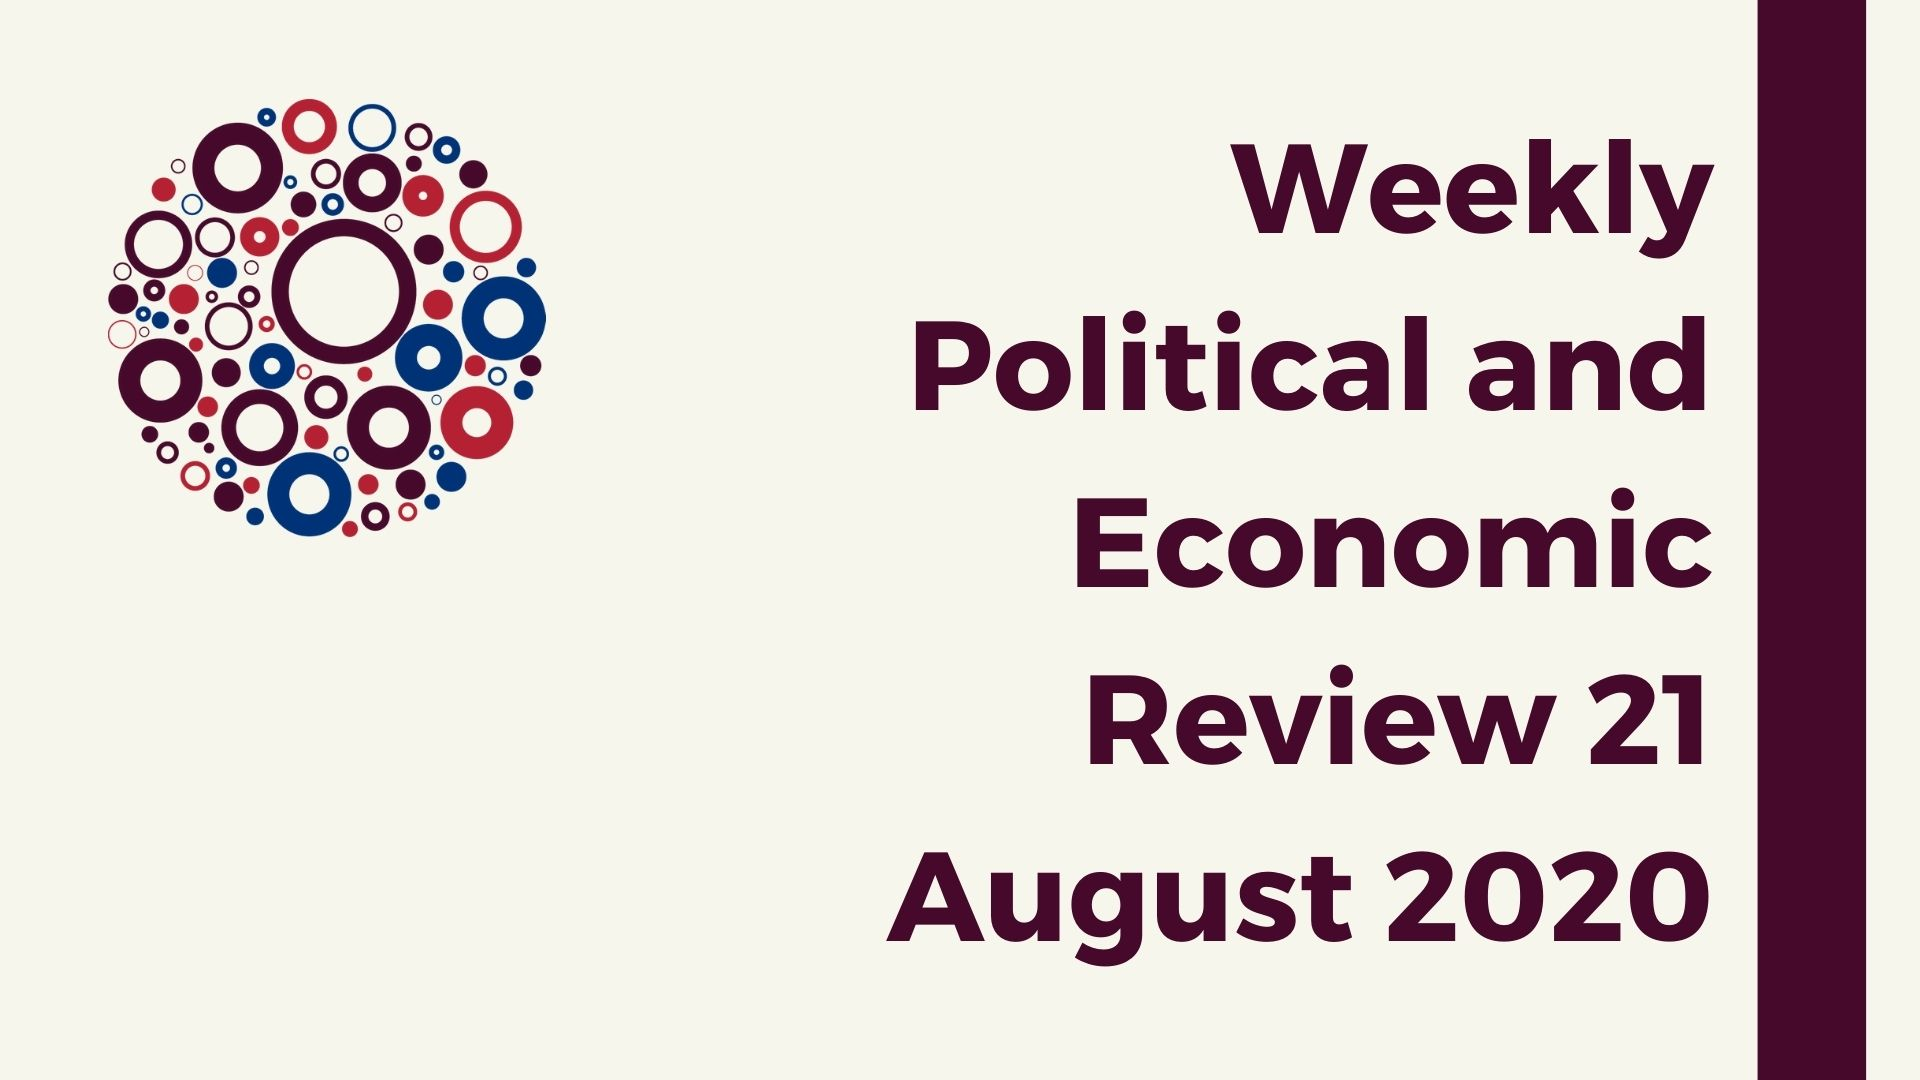 Weekly Political and Economic Review 21 August 2020